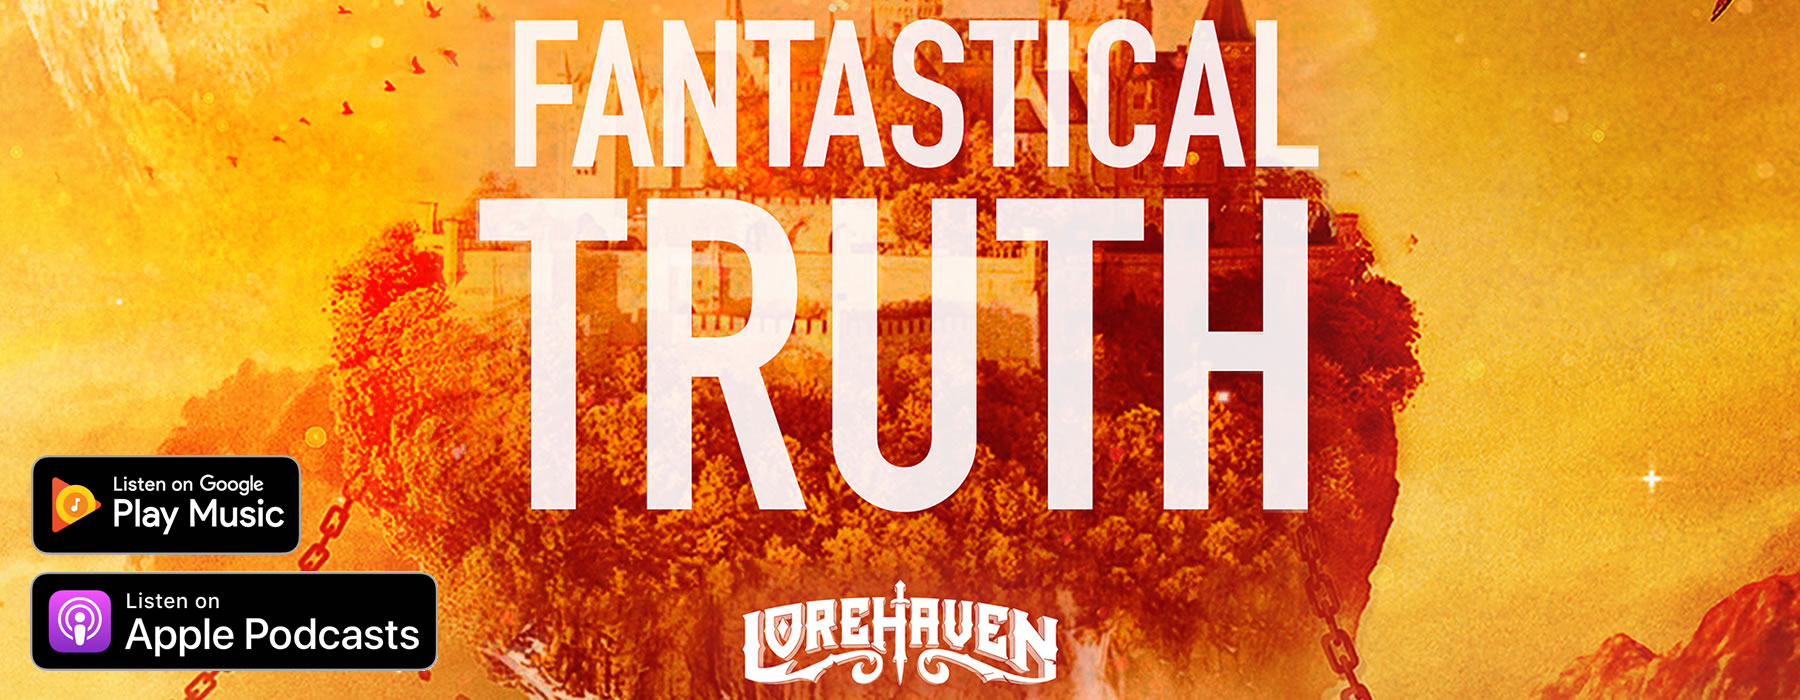 Fantastical Truth, banner